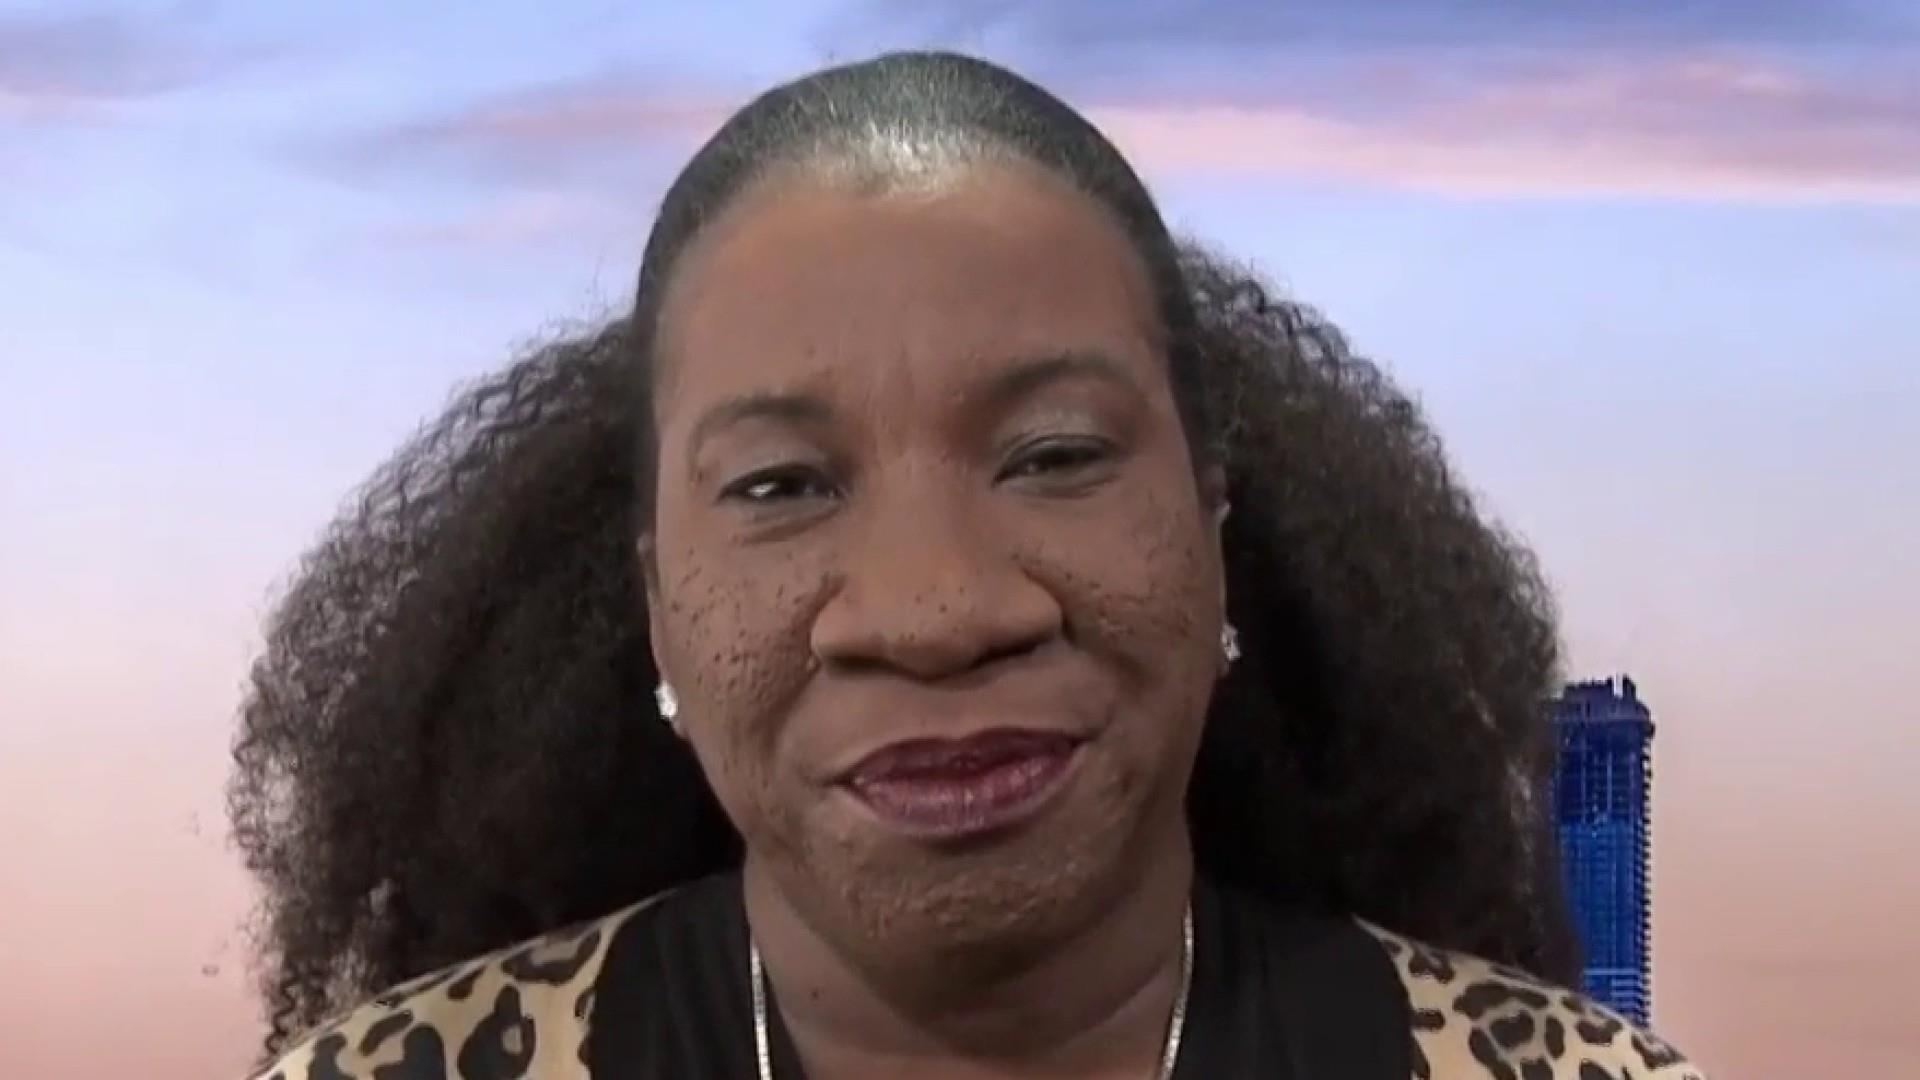 #MeToo founder Tarana Burke: There's power in numbers